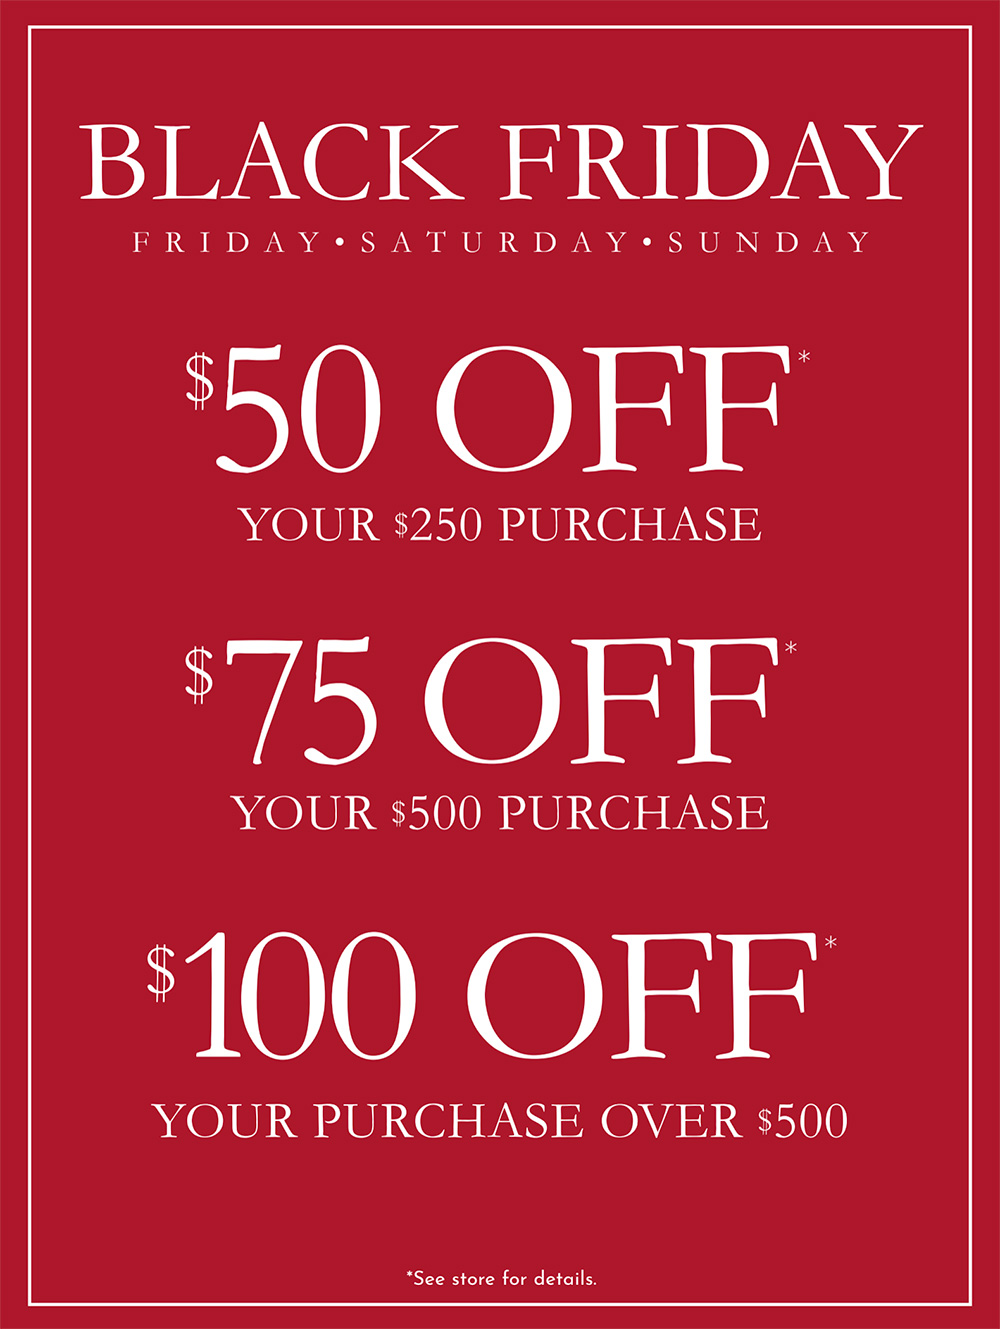 Black Friday Sale from The Eye Gallery